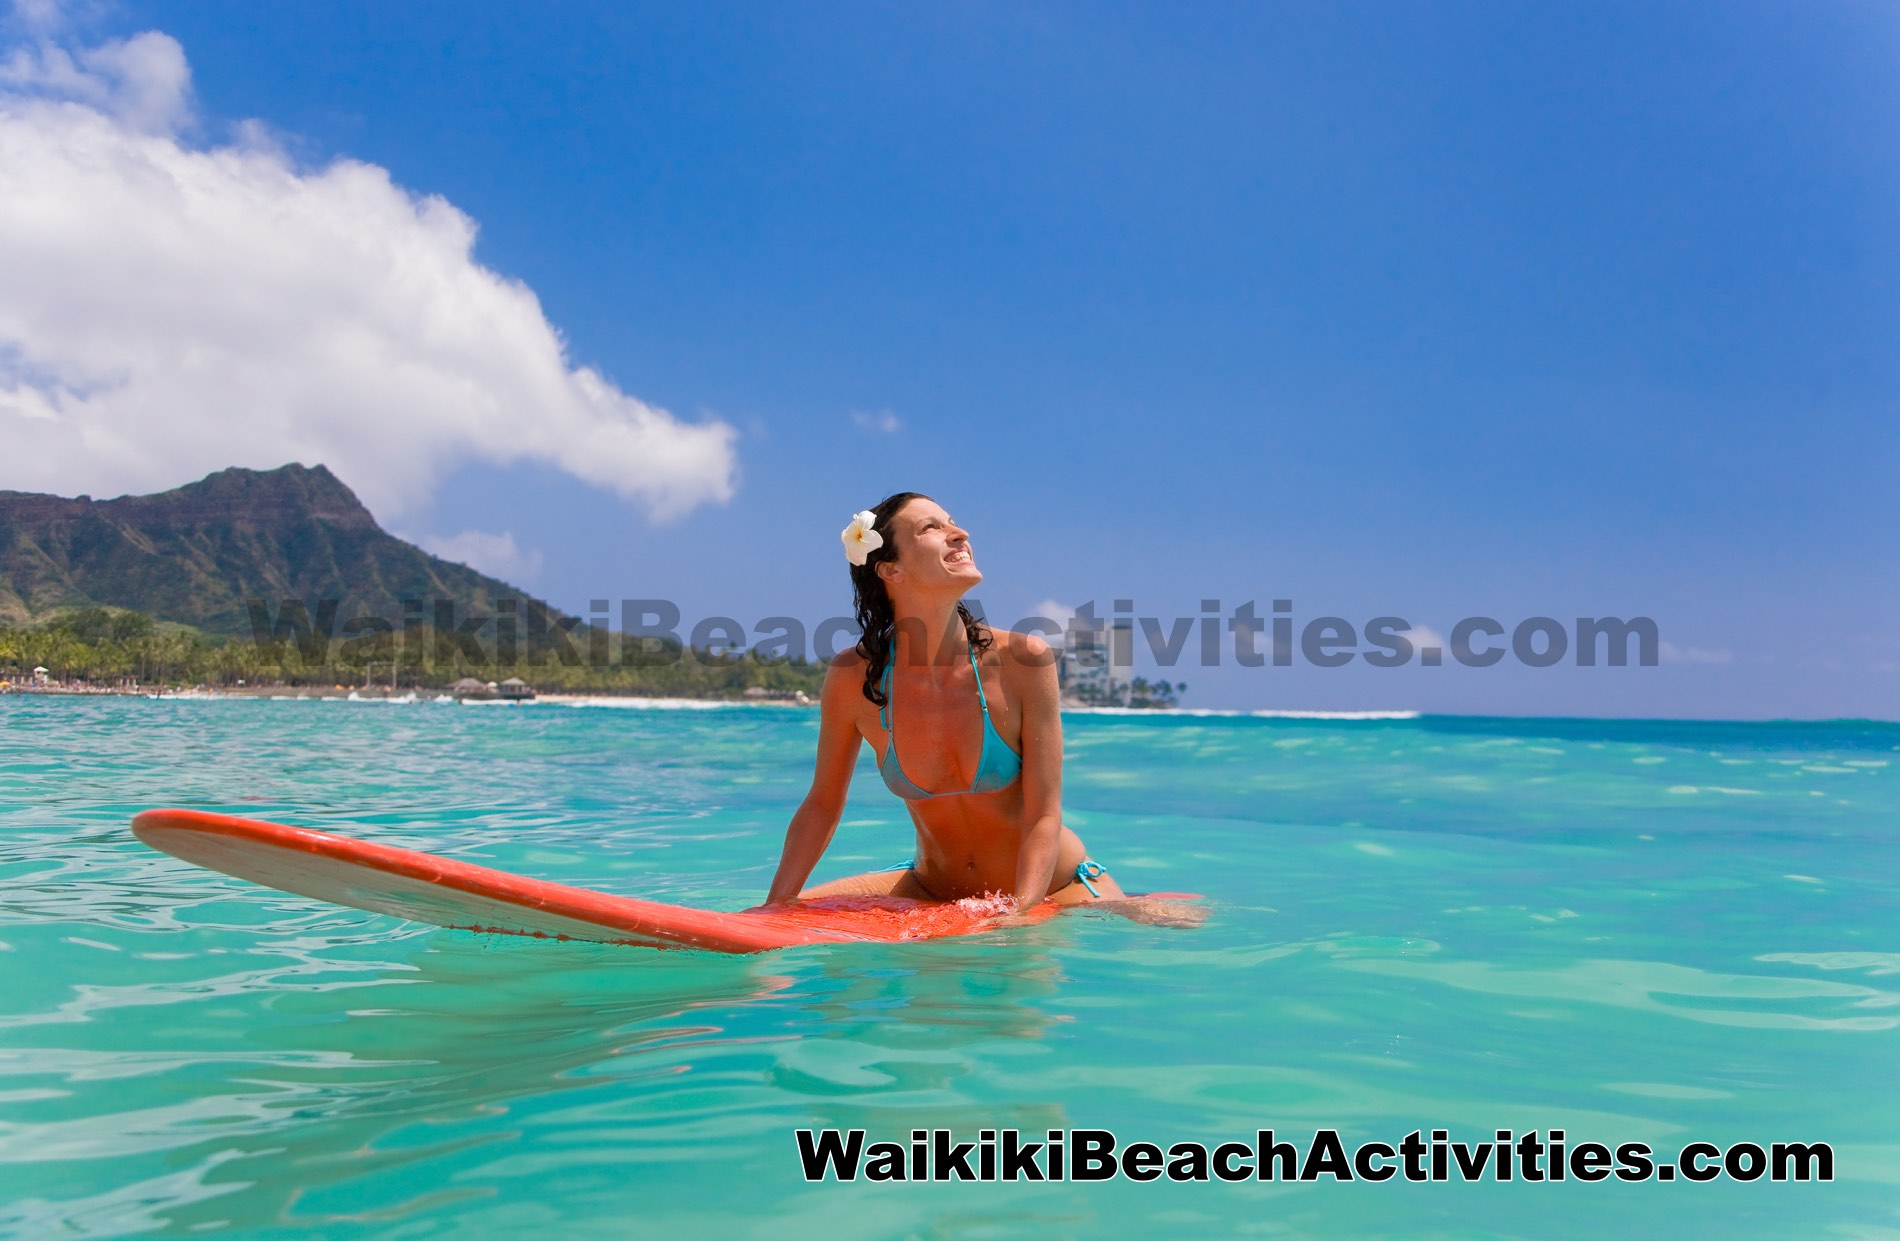 Waikiki Beach Activities We Deliver The Experience